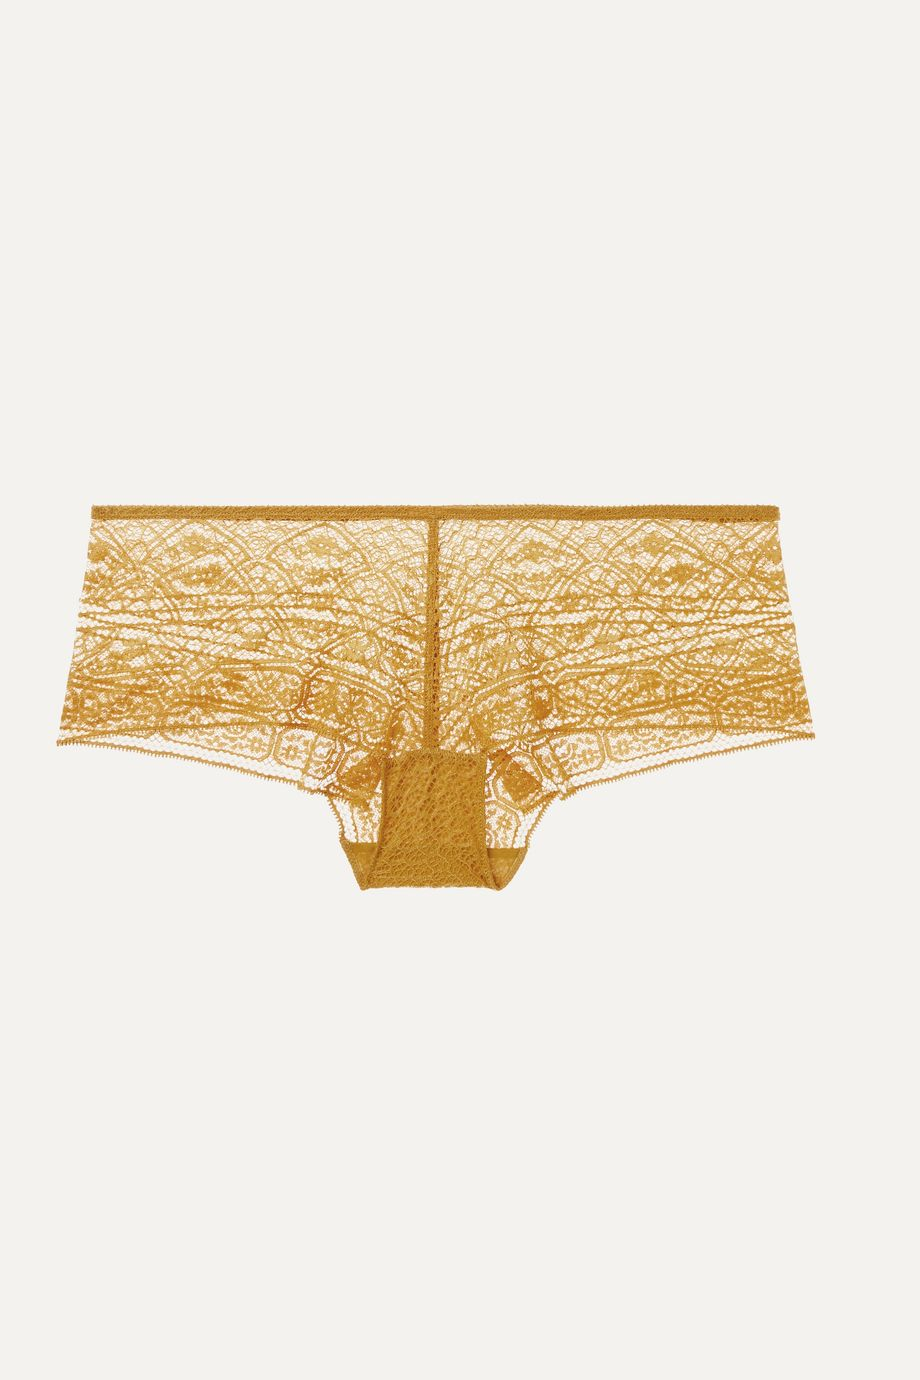 Eres Caraco stretch-lace boy shorts